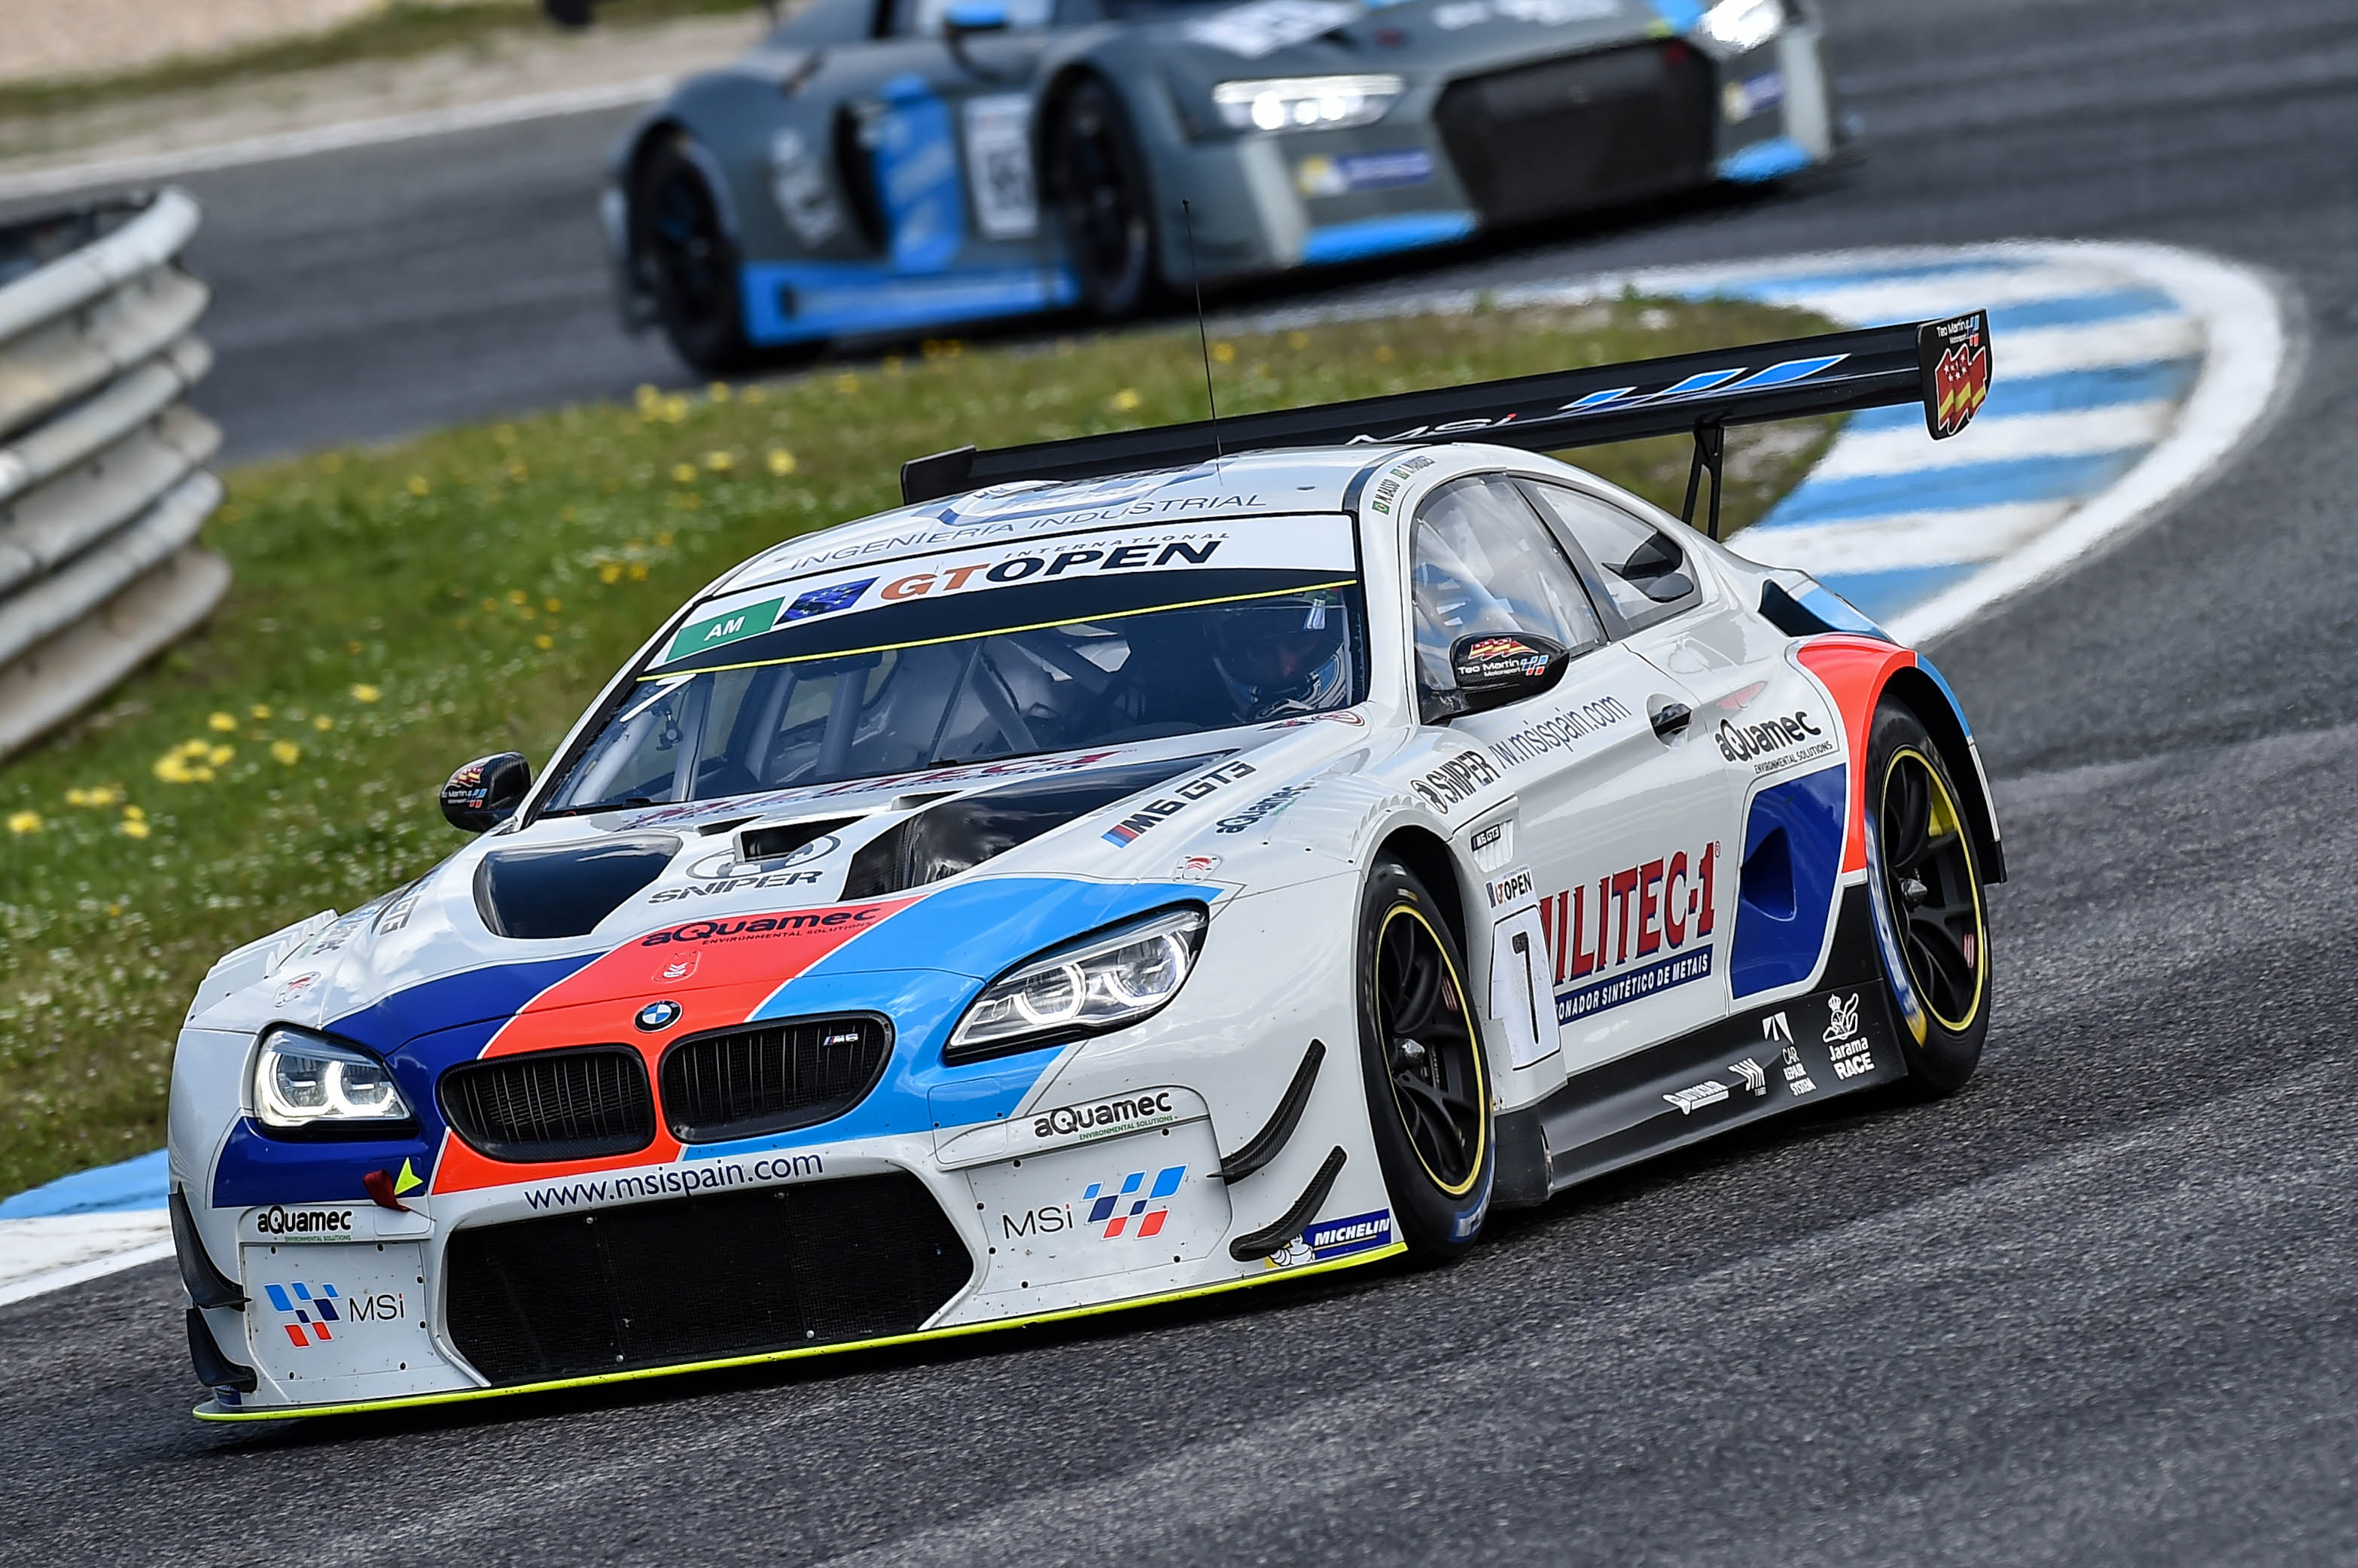 Photo of GT Open – Basso e Marques apostam na força da BMW em Paul Ricard para voltarem ao pódio